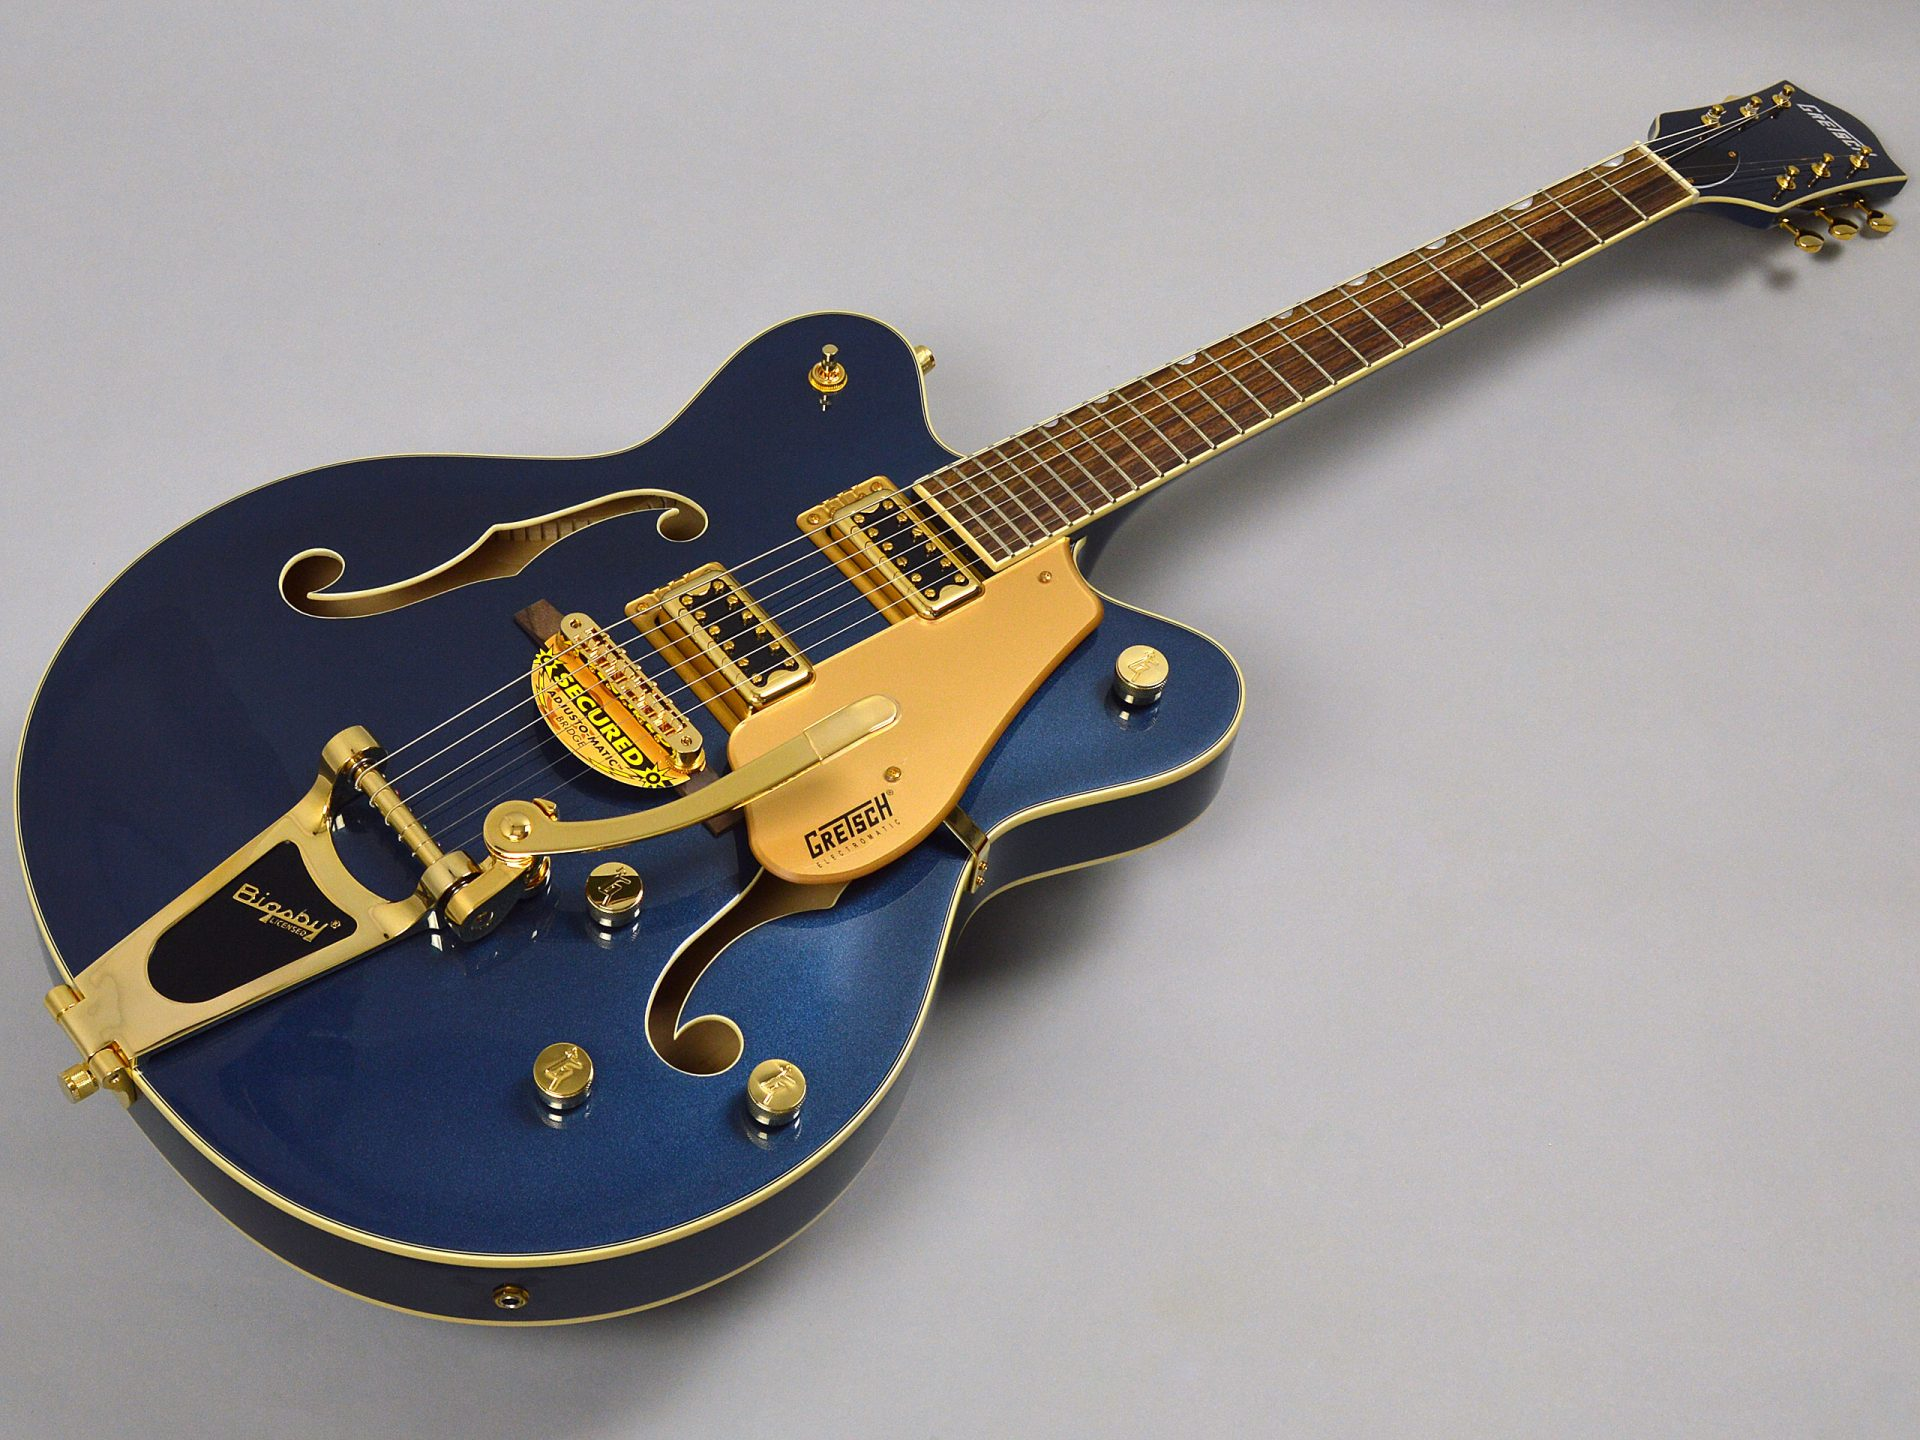 GRETSCH G5422TG Limited Edition Electromatic Hollow Body Double-Cut with Bigsby Cadillac Greenトップ画像